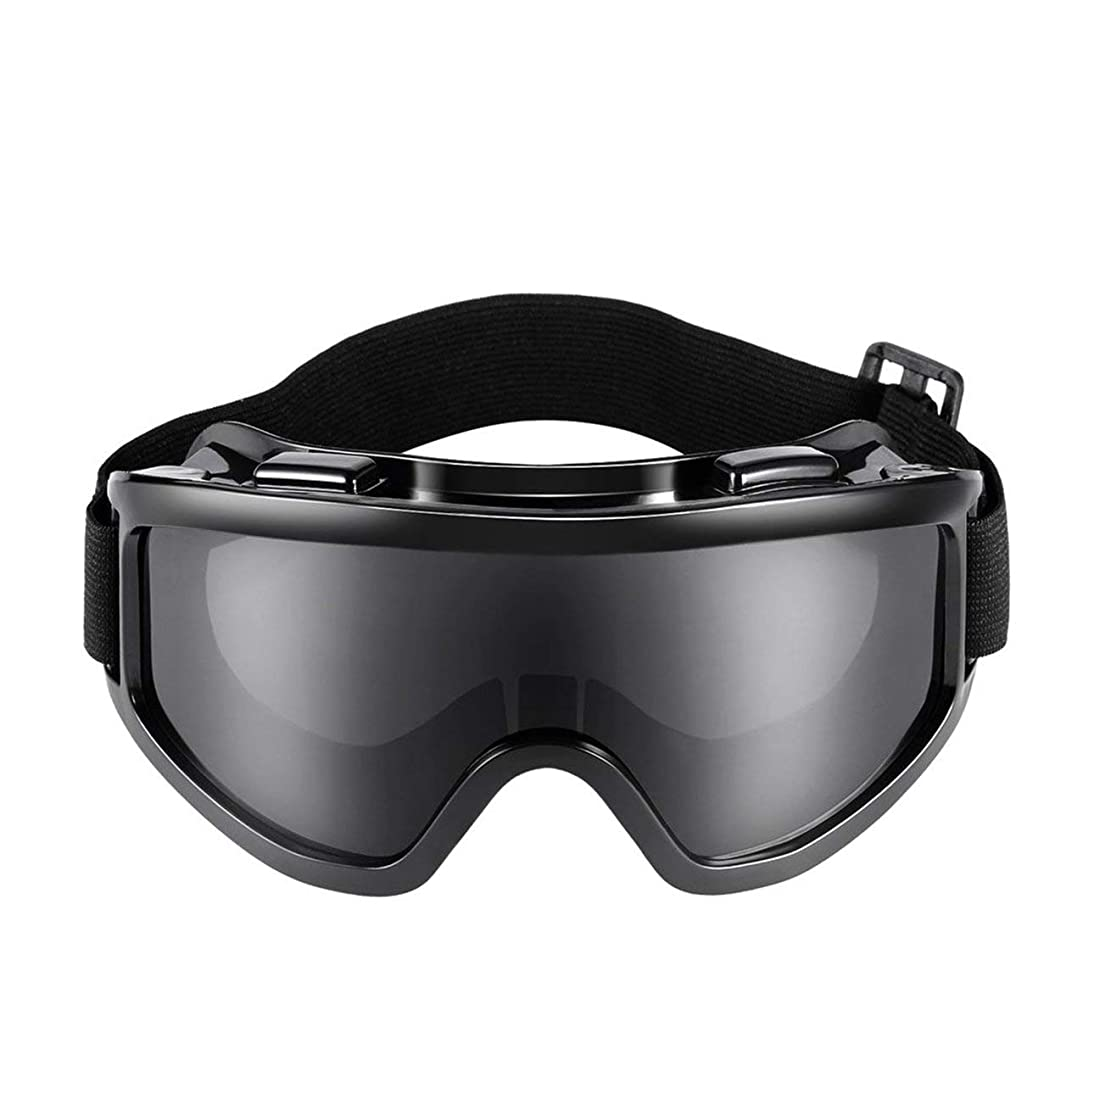 Liobaba PC Lens Goggles Protective Glasses Protect Eyes Mask Dust-Proof Wind-Proof kjmp385417500917